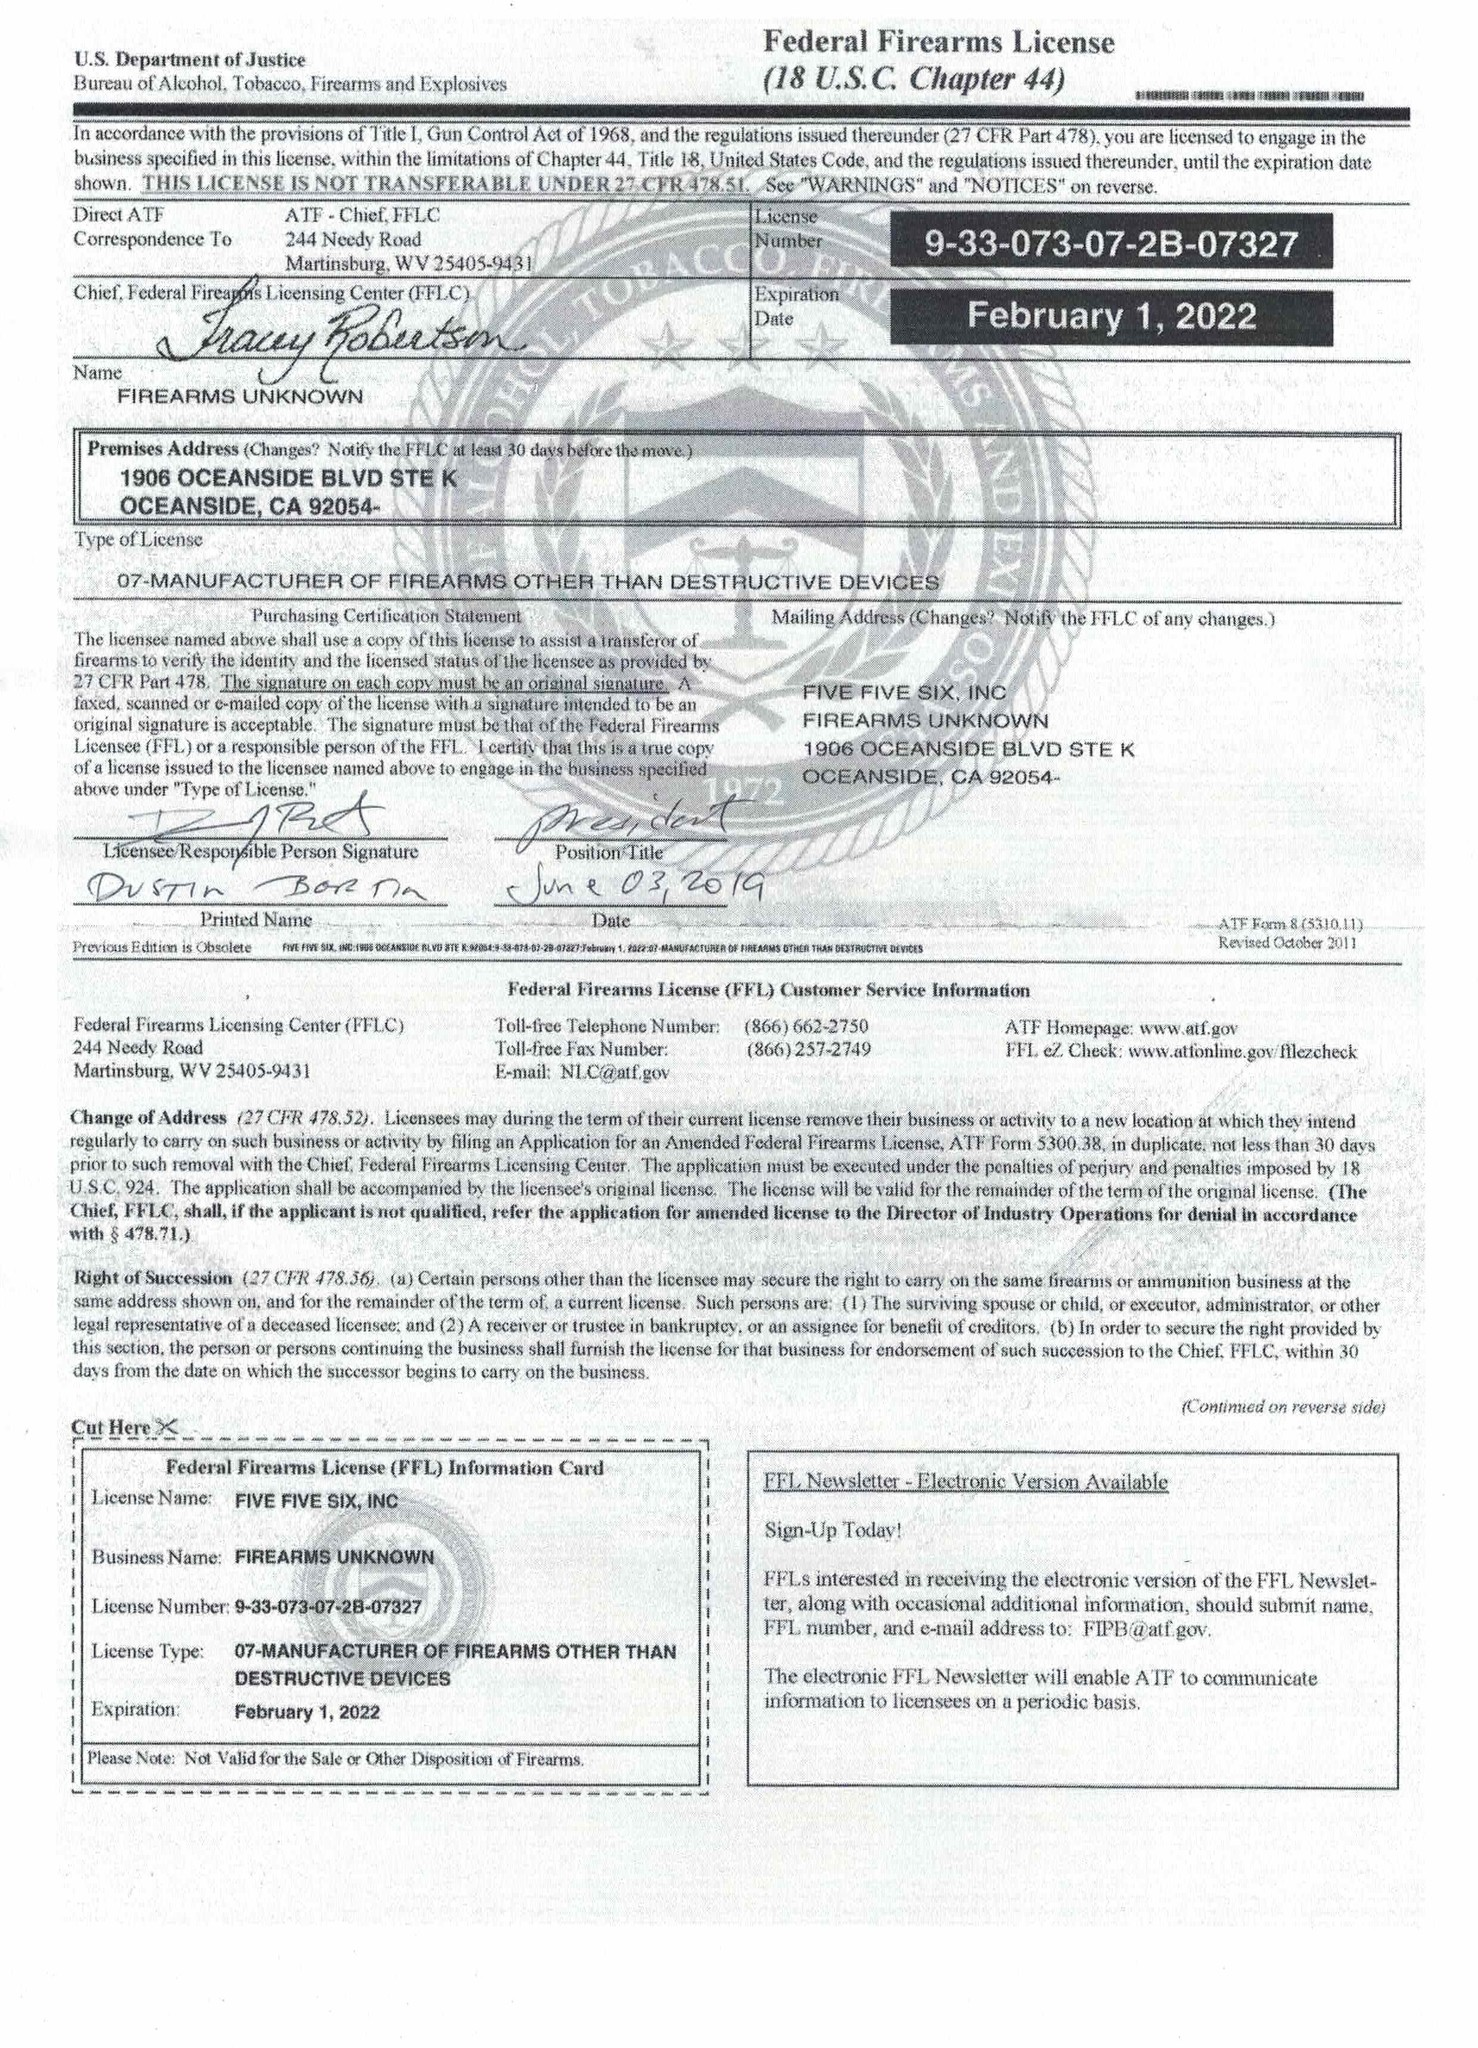 Oceanside's Federal Firearm License